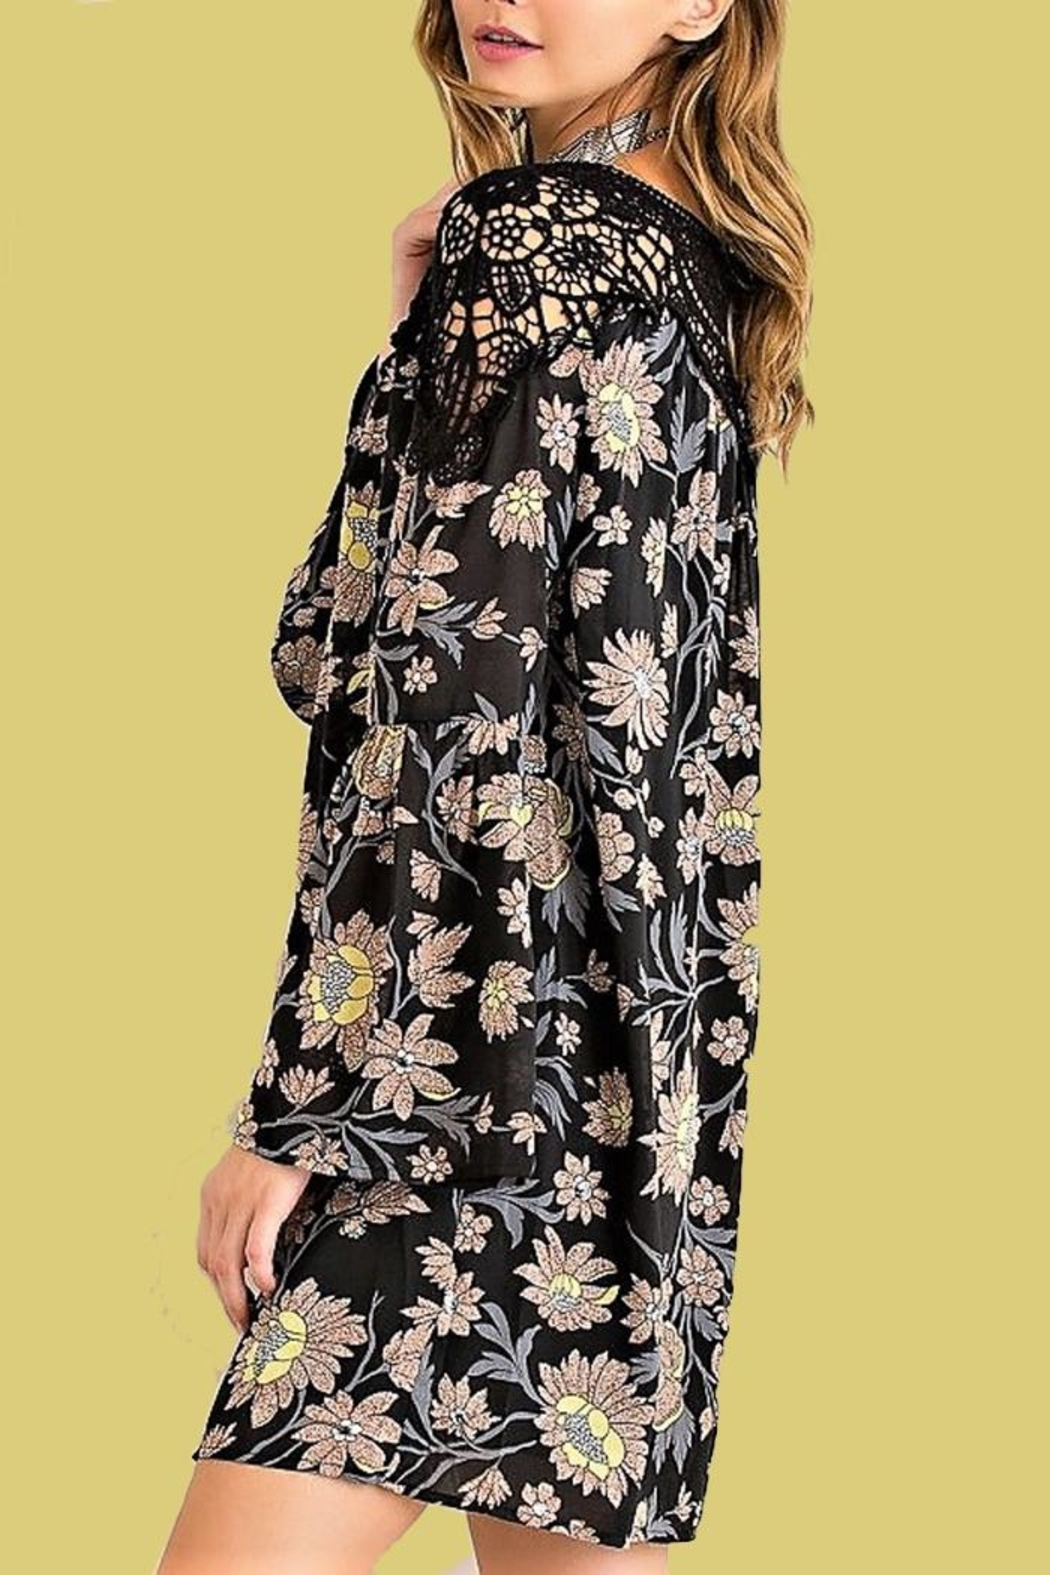 People Outfitter Floral Crochet Dress - Front Full Image